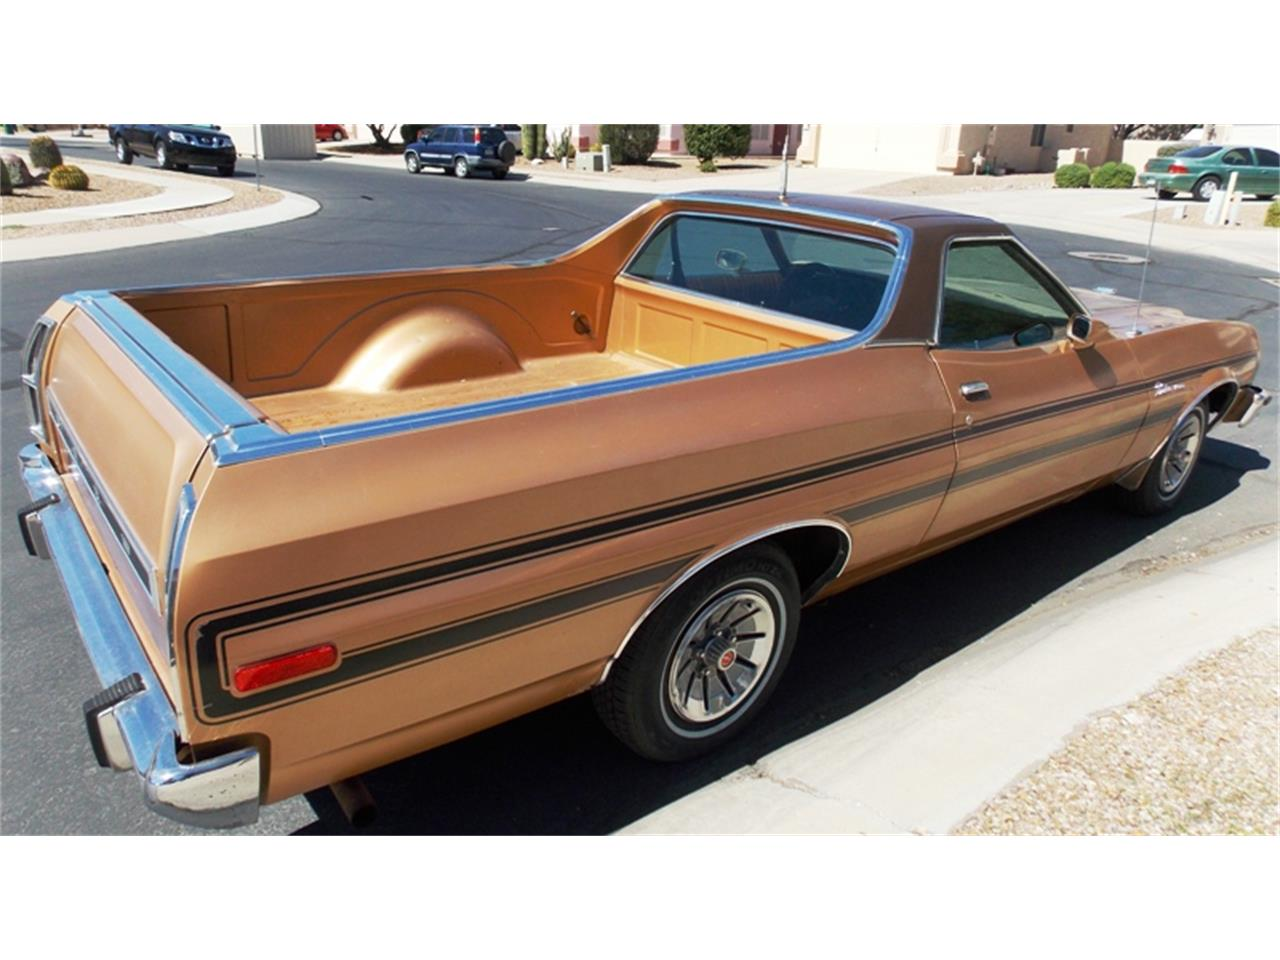 1976 Ford Ranchero 500 (CC-1270448) for sale in Tucson, AZ - Arizona